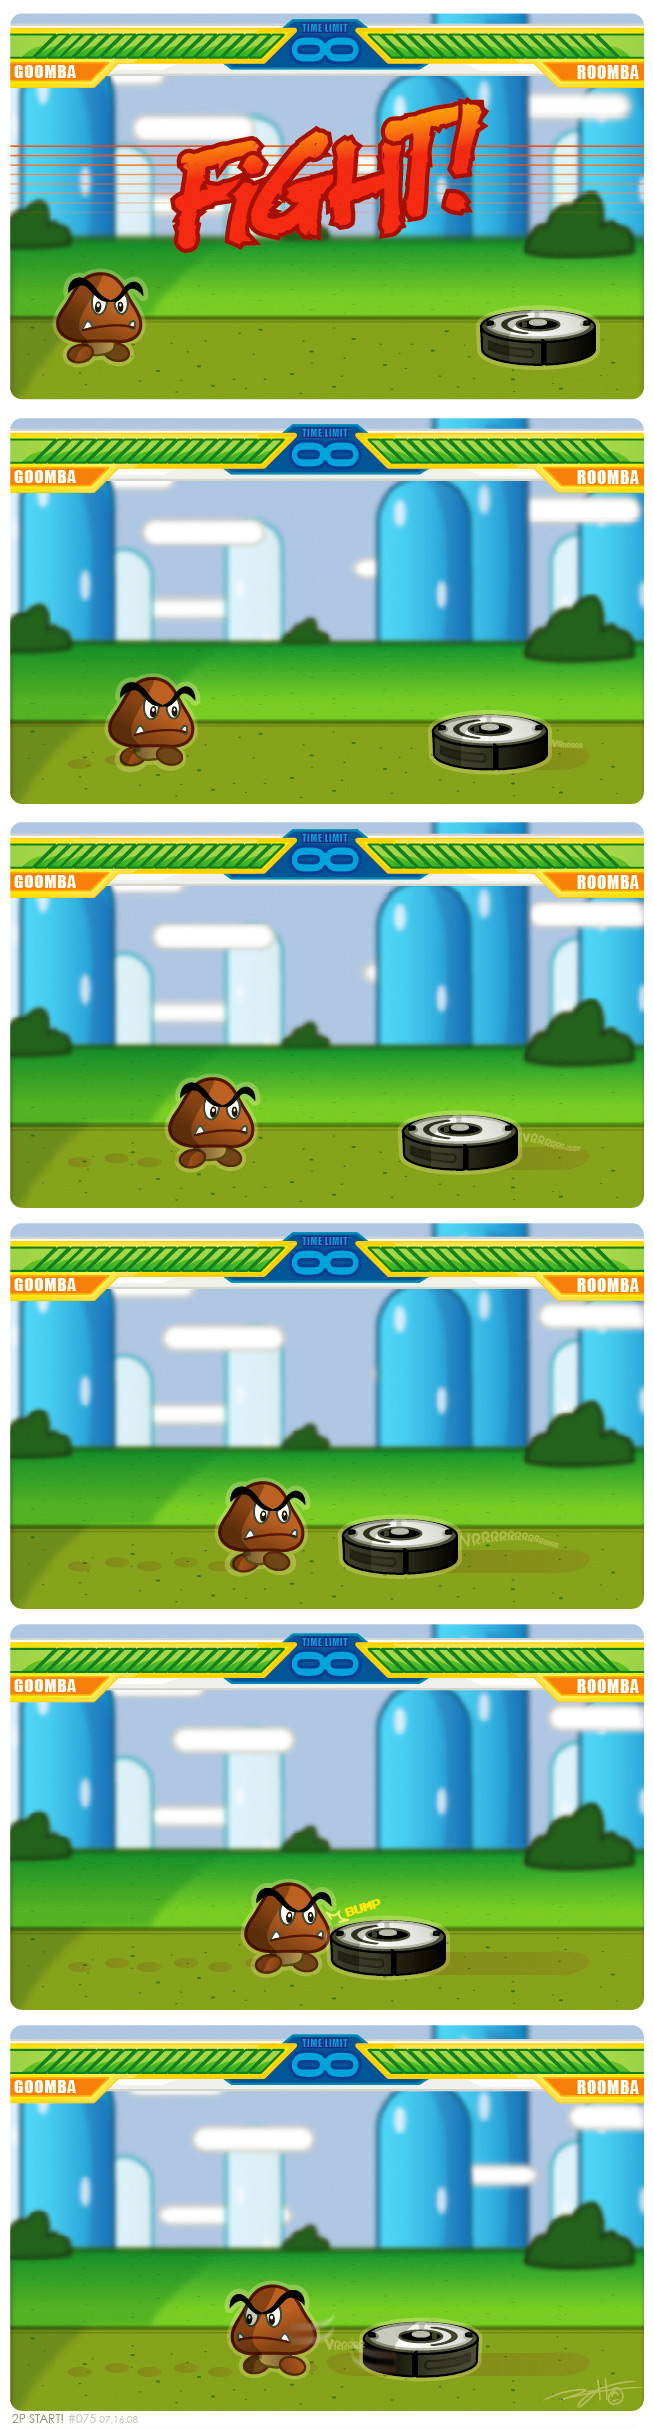 Goomba vs. Roomba